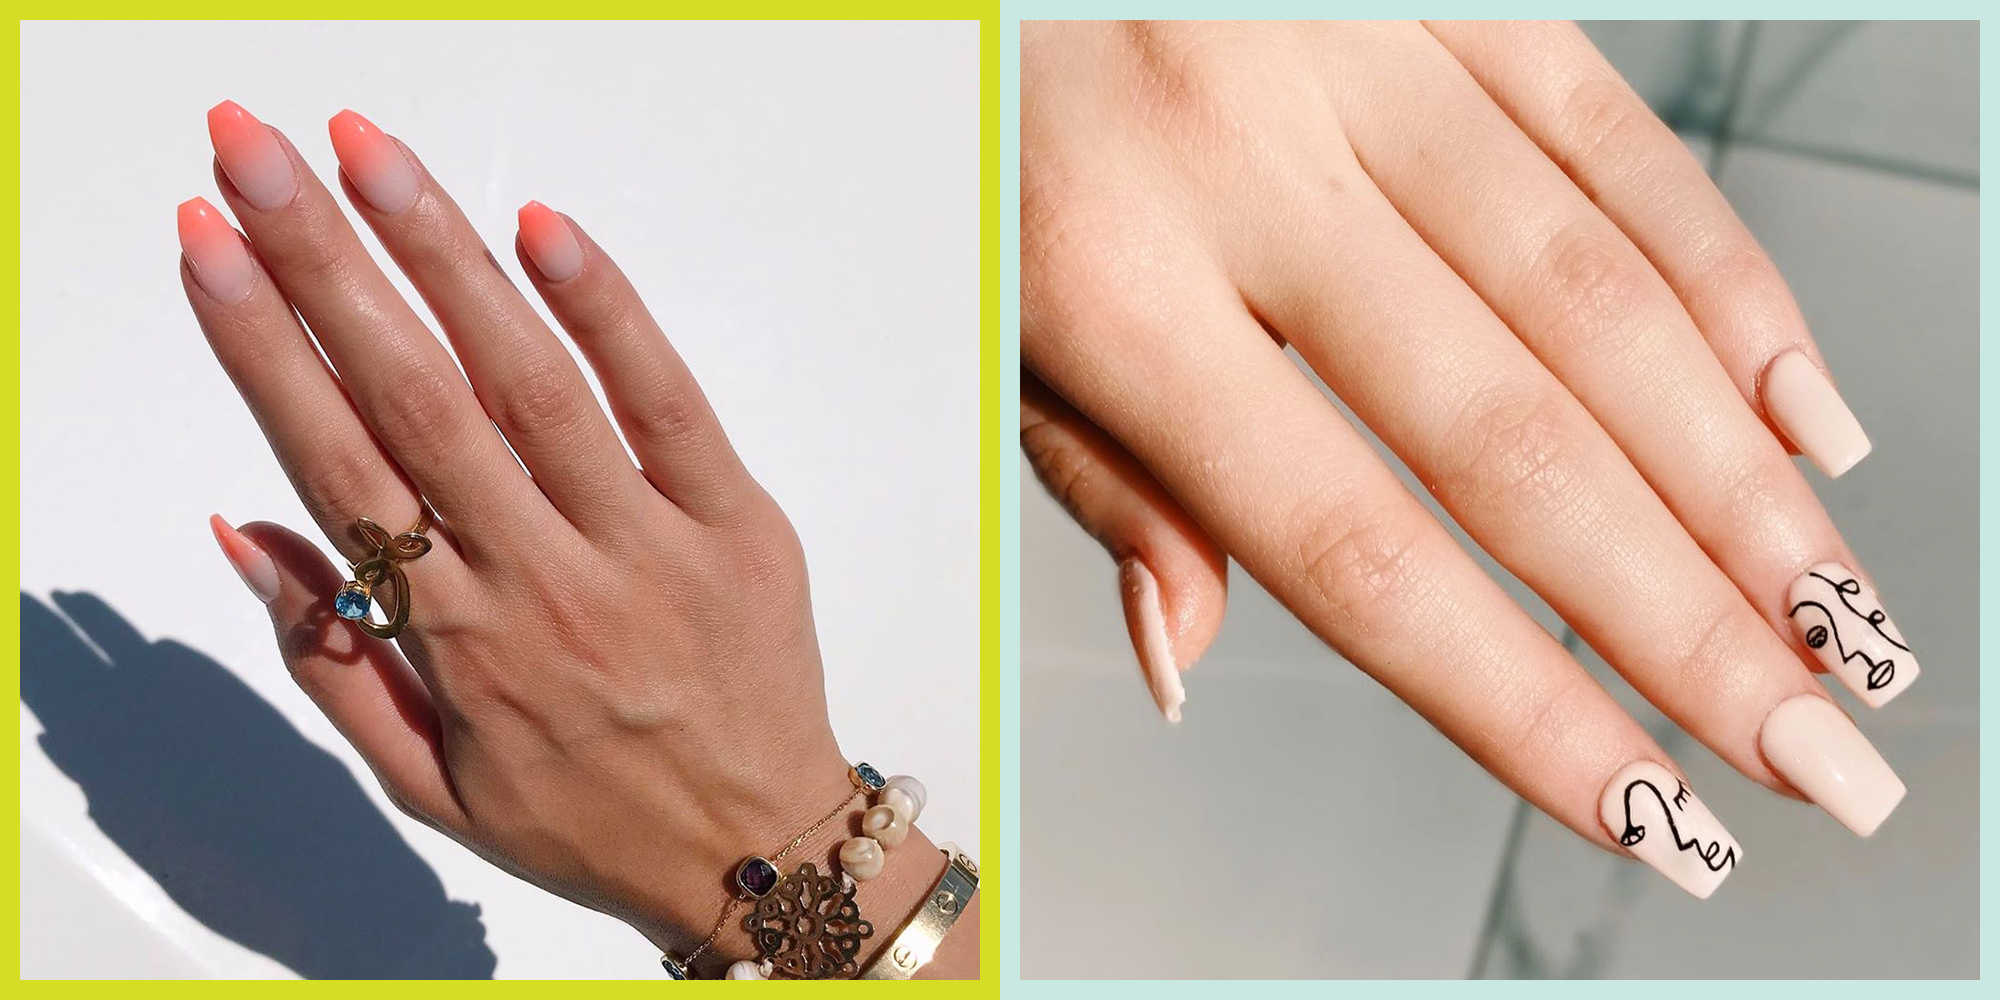 10 Square Nail Ideas and Designs to Copy ASAP